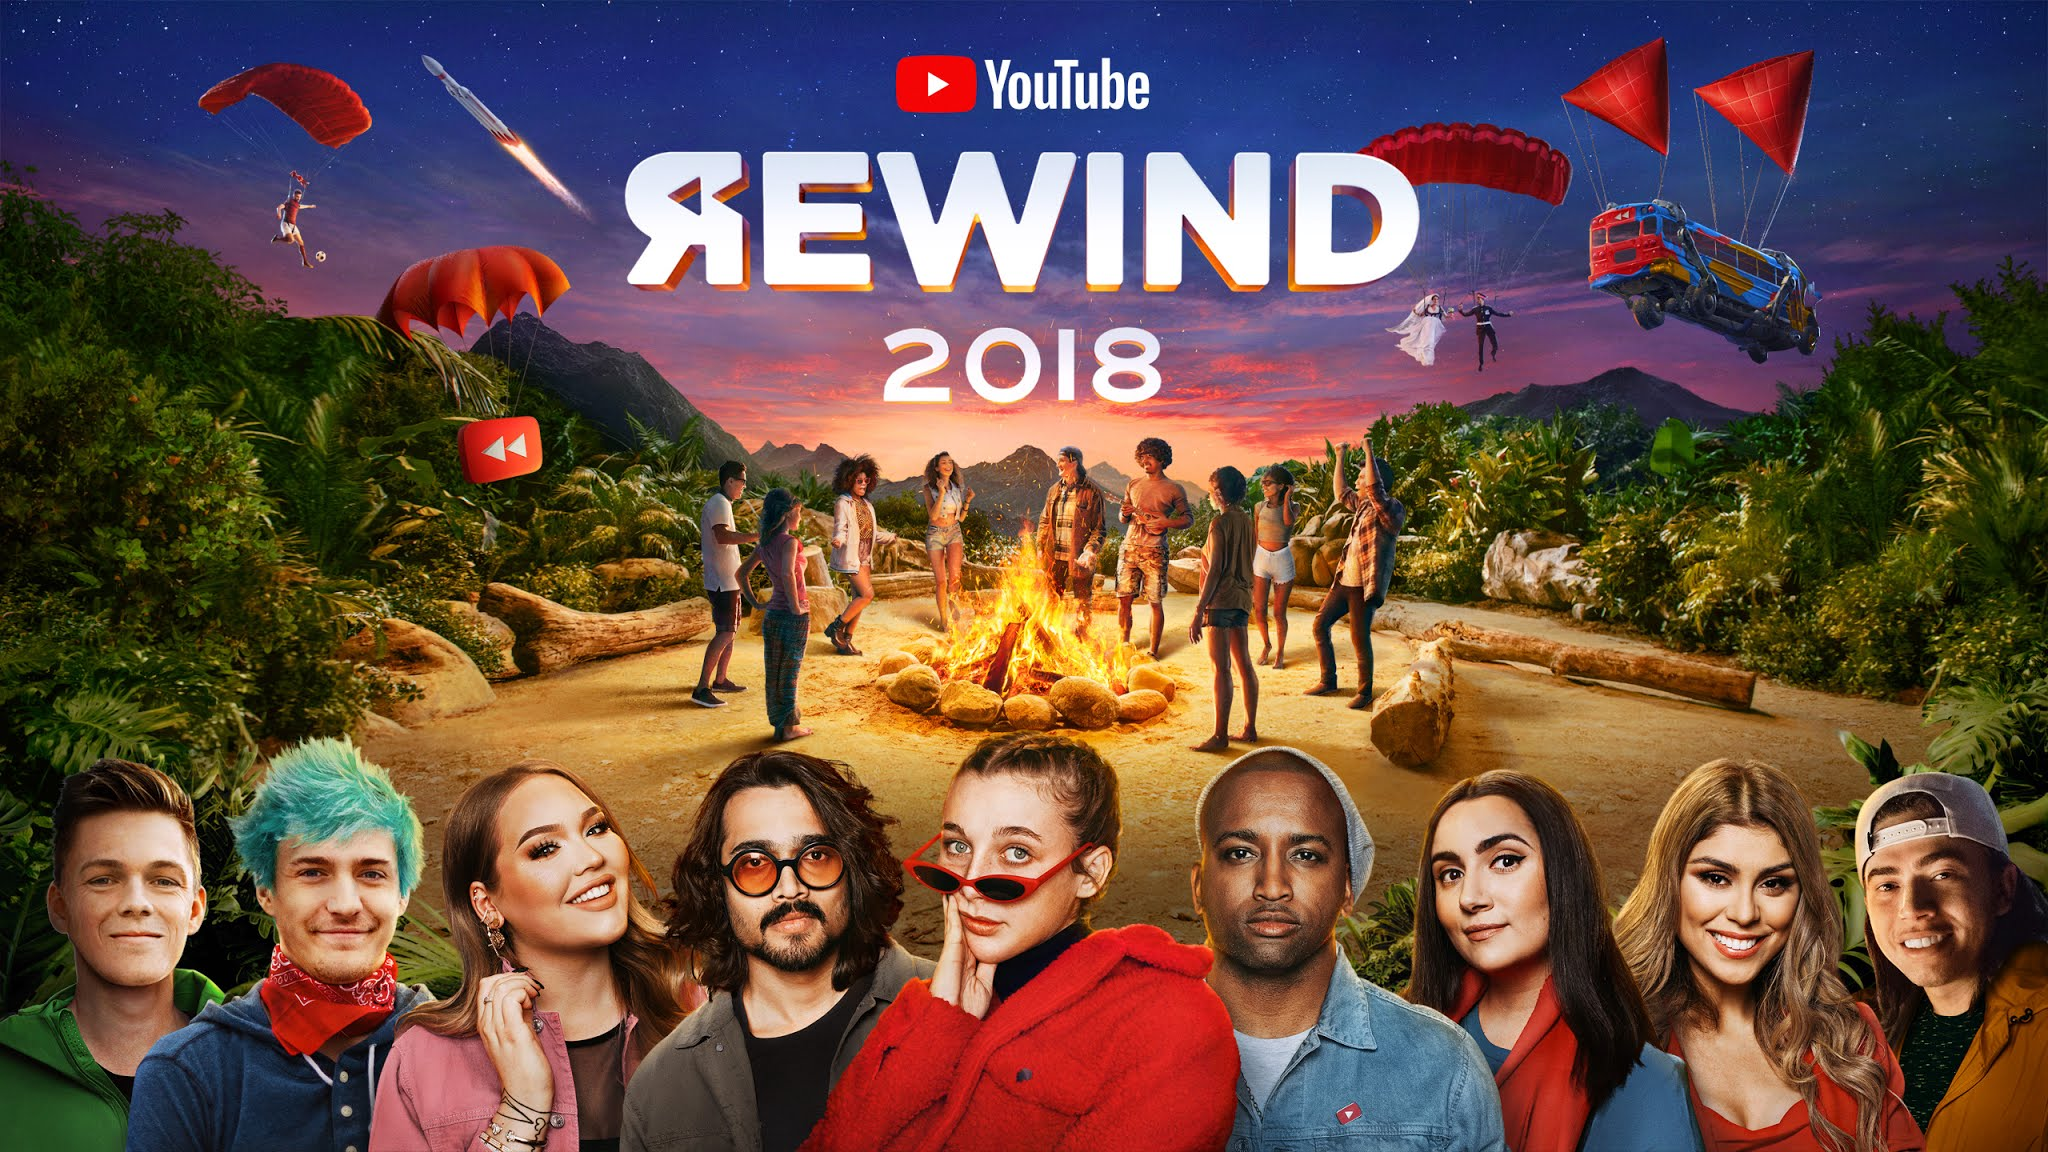 youtube-rewind-2018-musica-latina-kylie-jenner